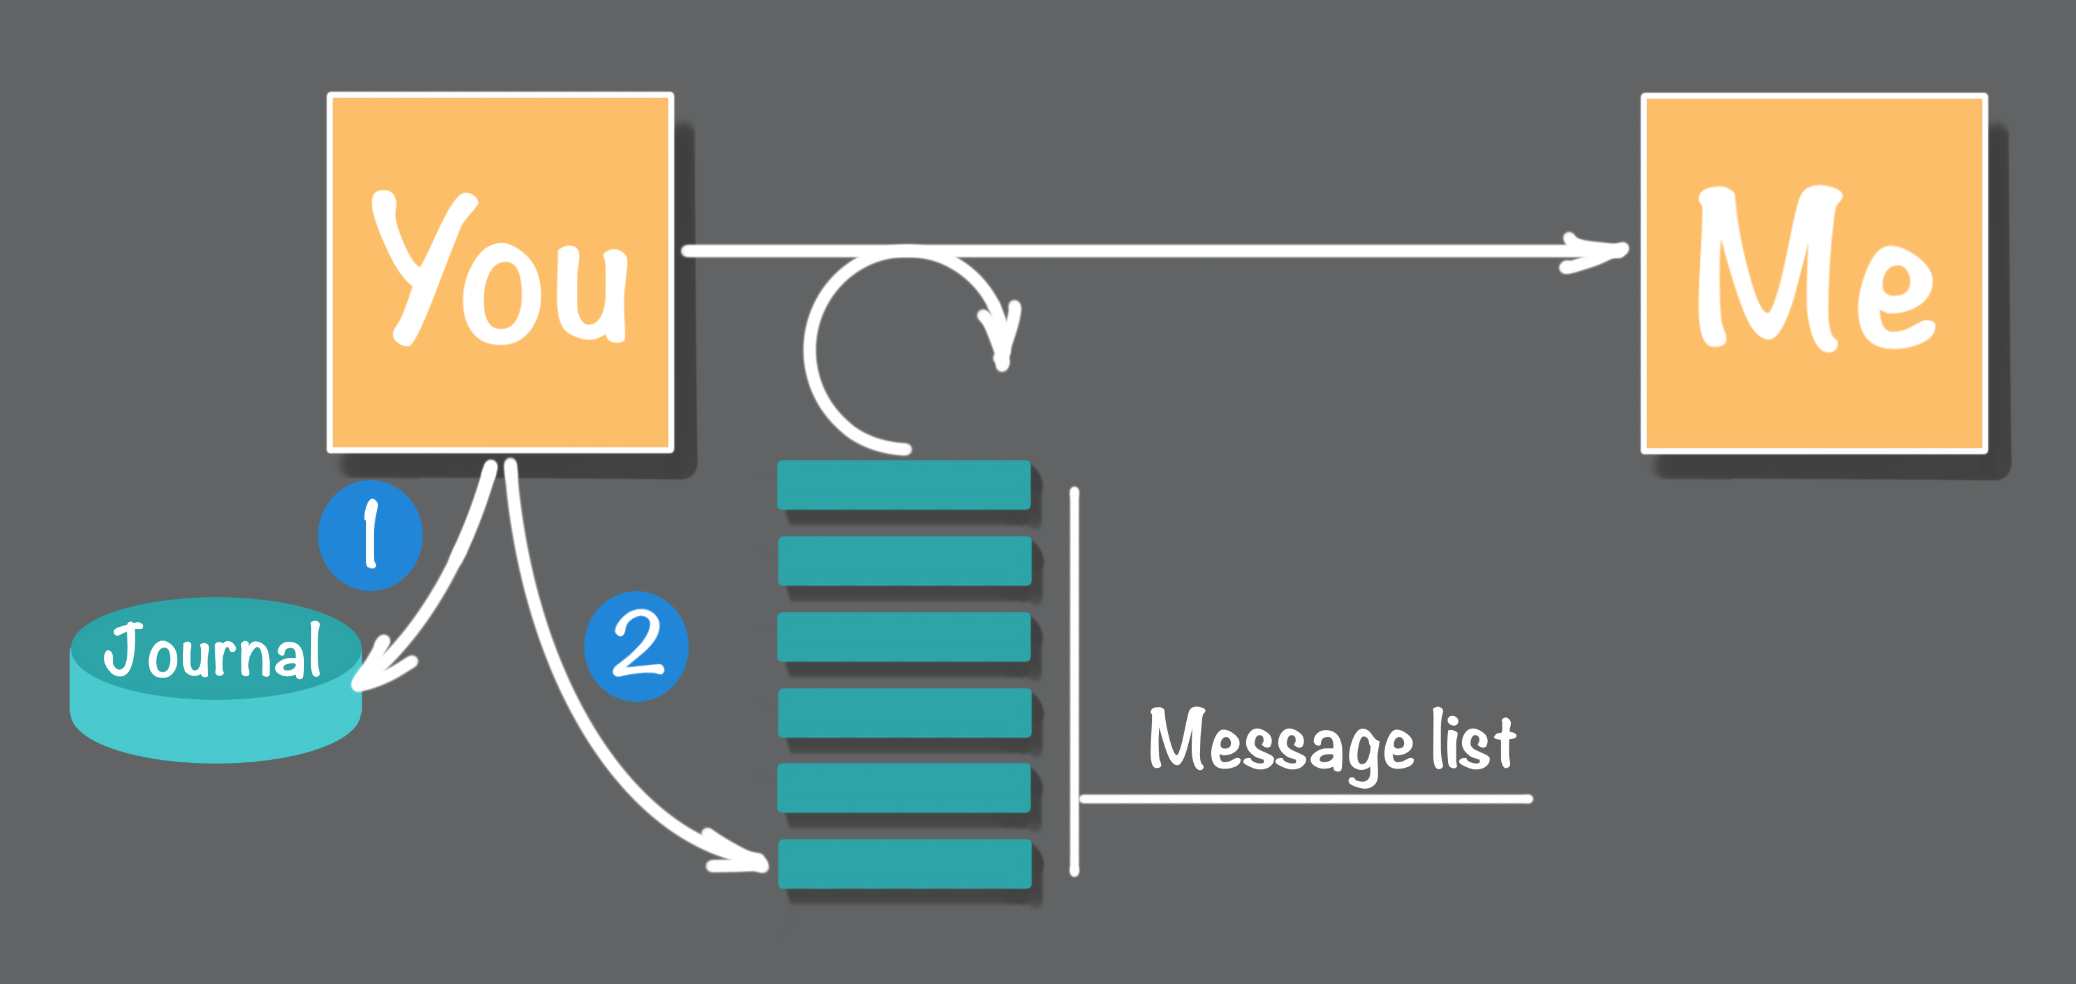 Figure 7: Add new task to a journal then add message to a list